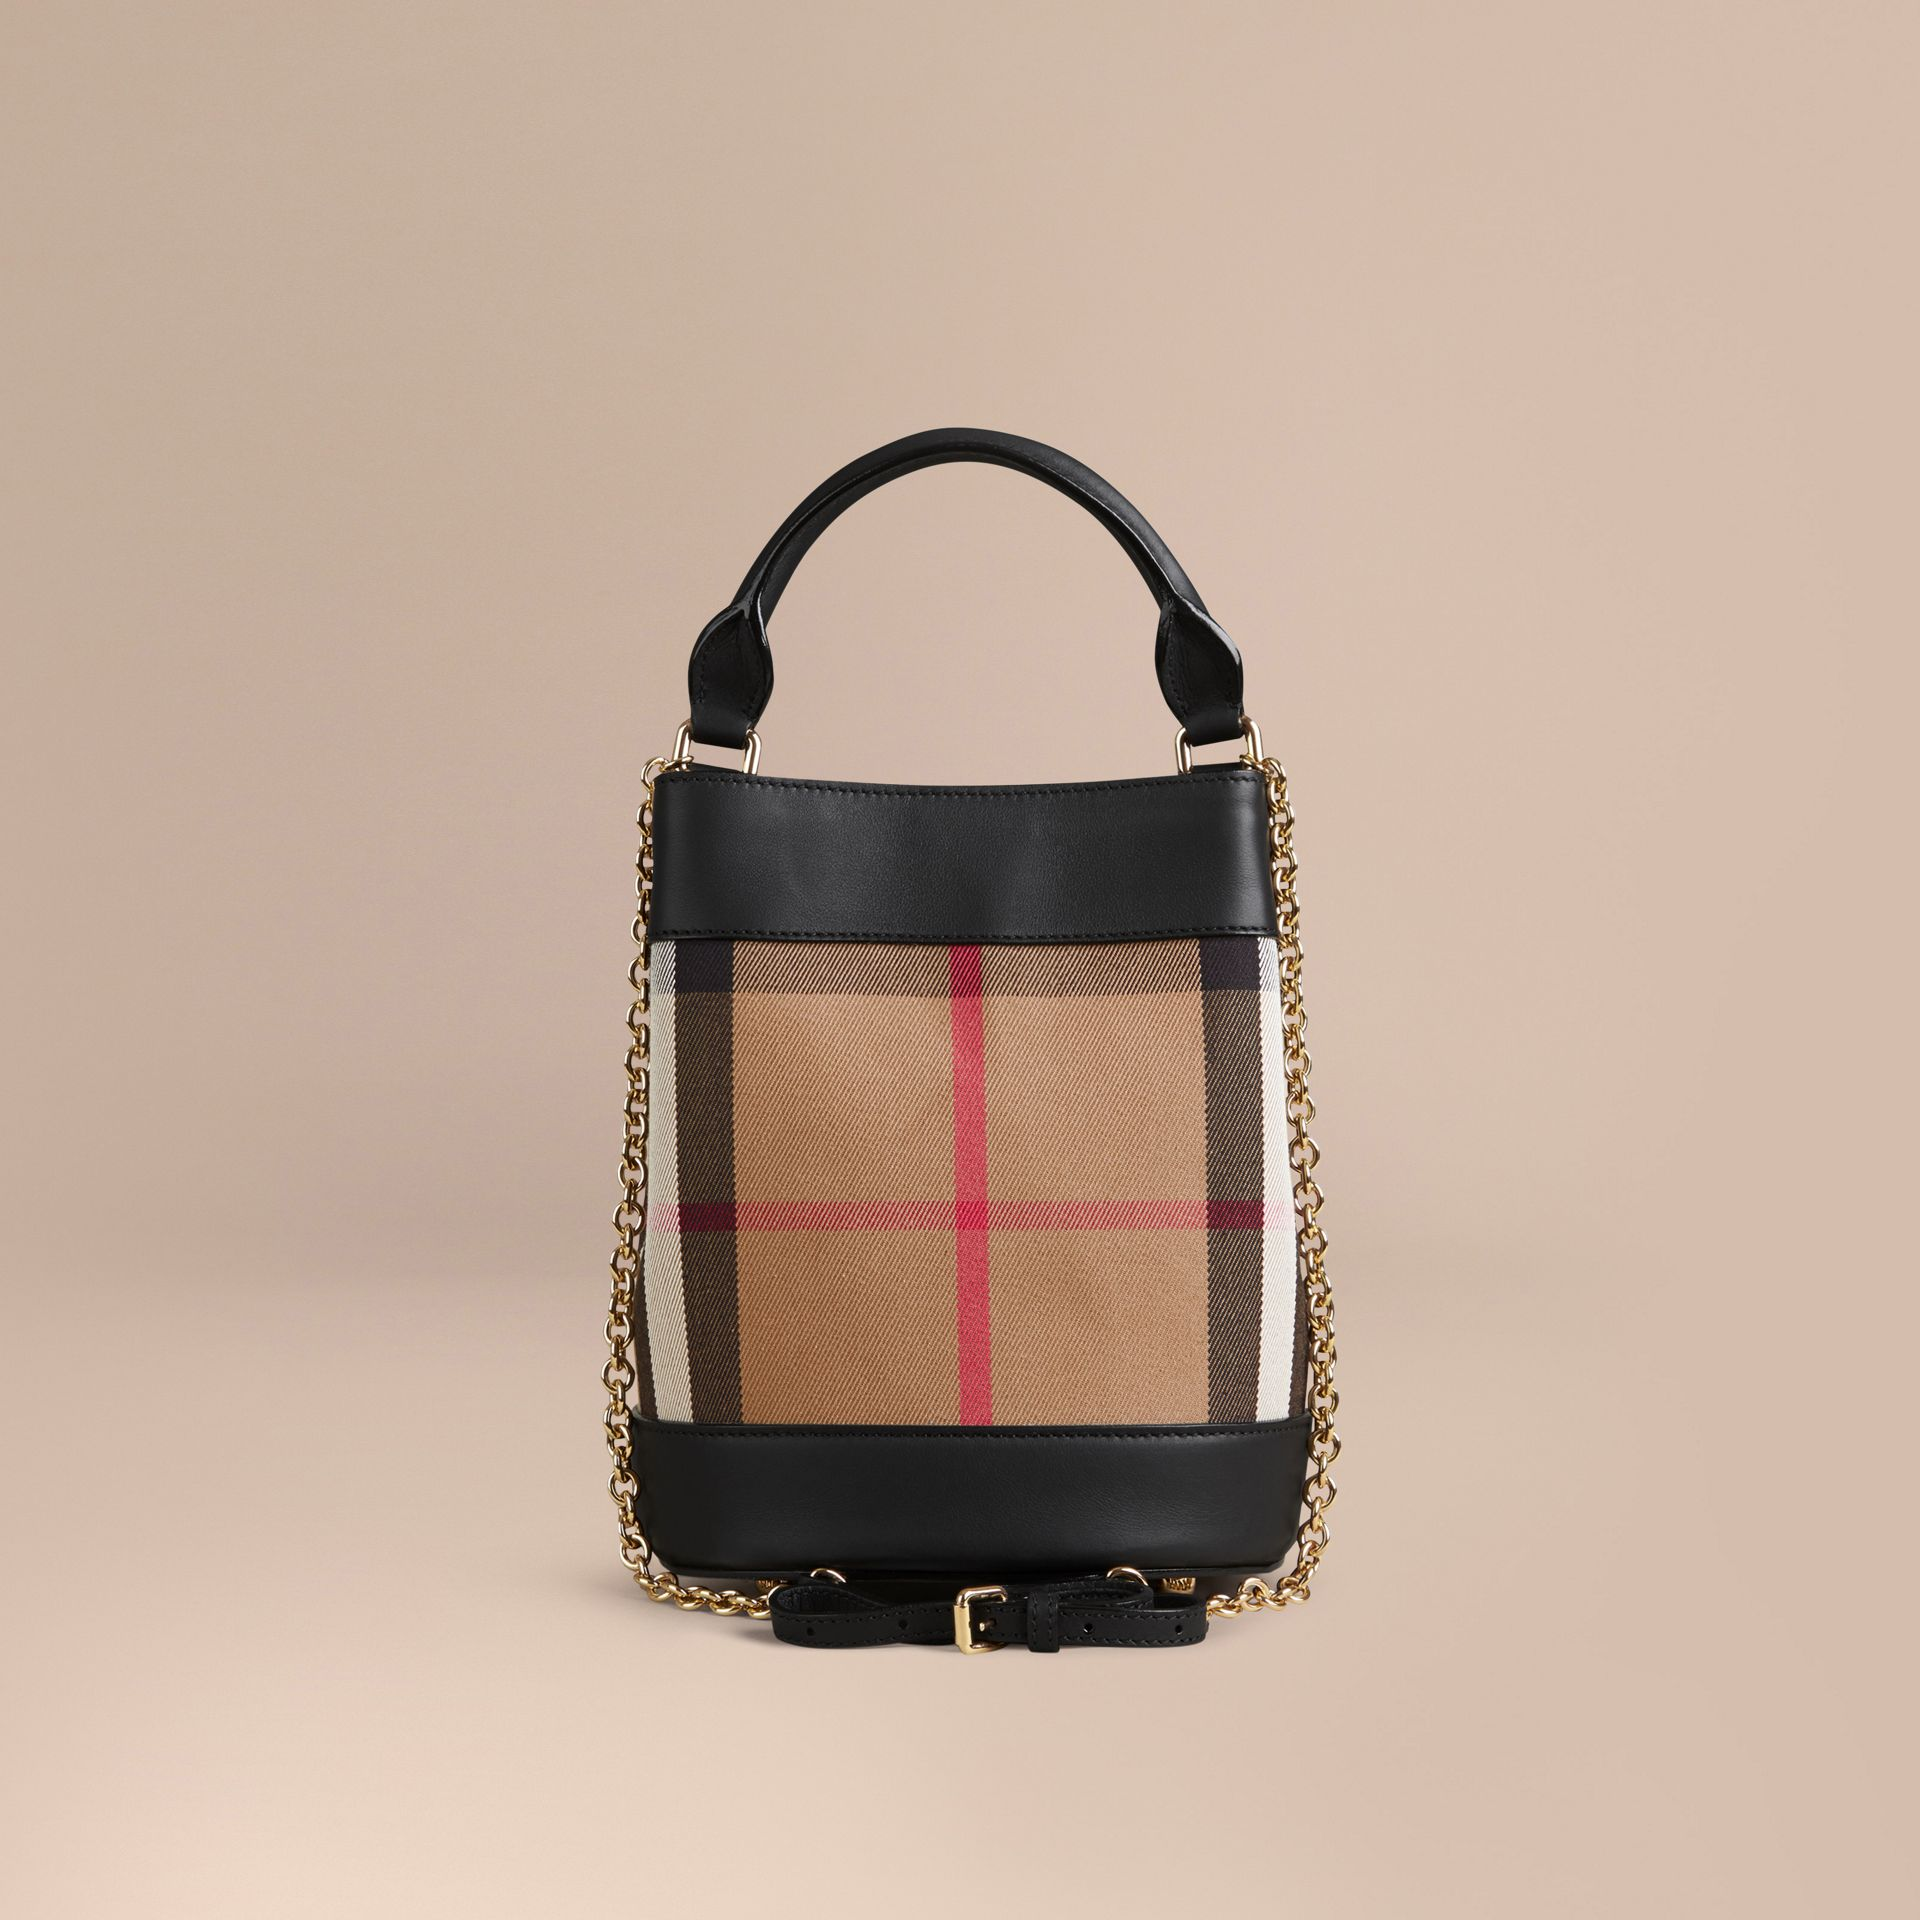 Noir Petit sac Burberry Bucket en coton House check et cuir - photo de la galerie 4